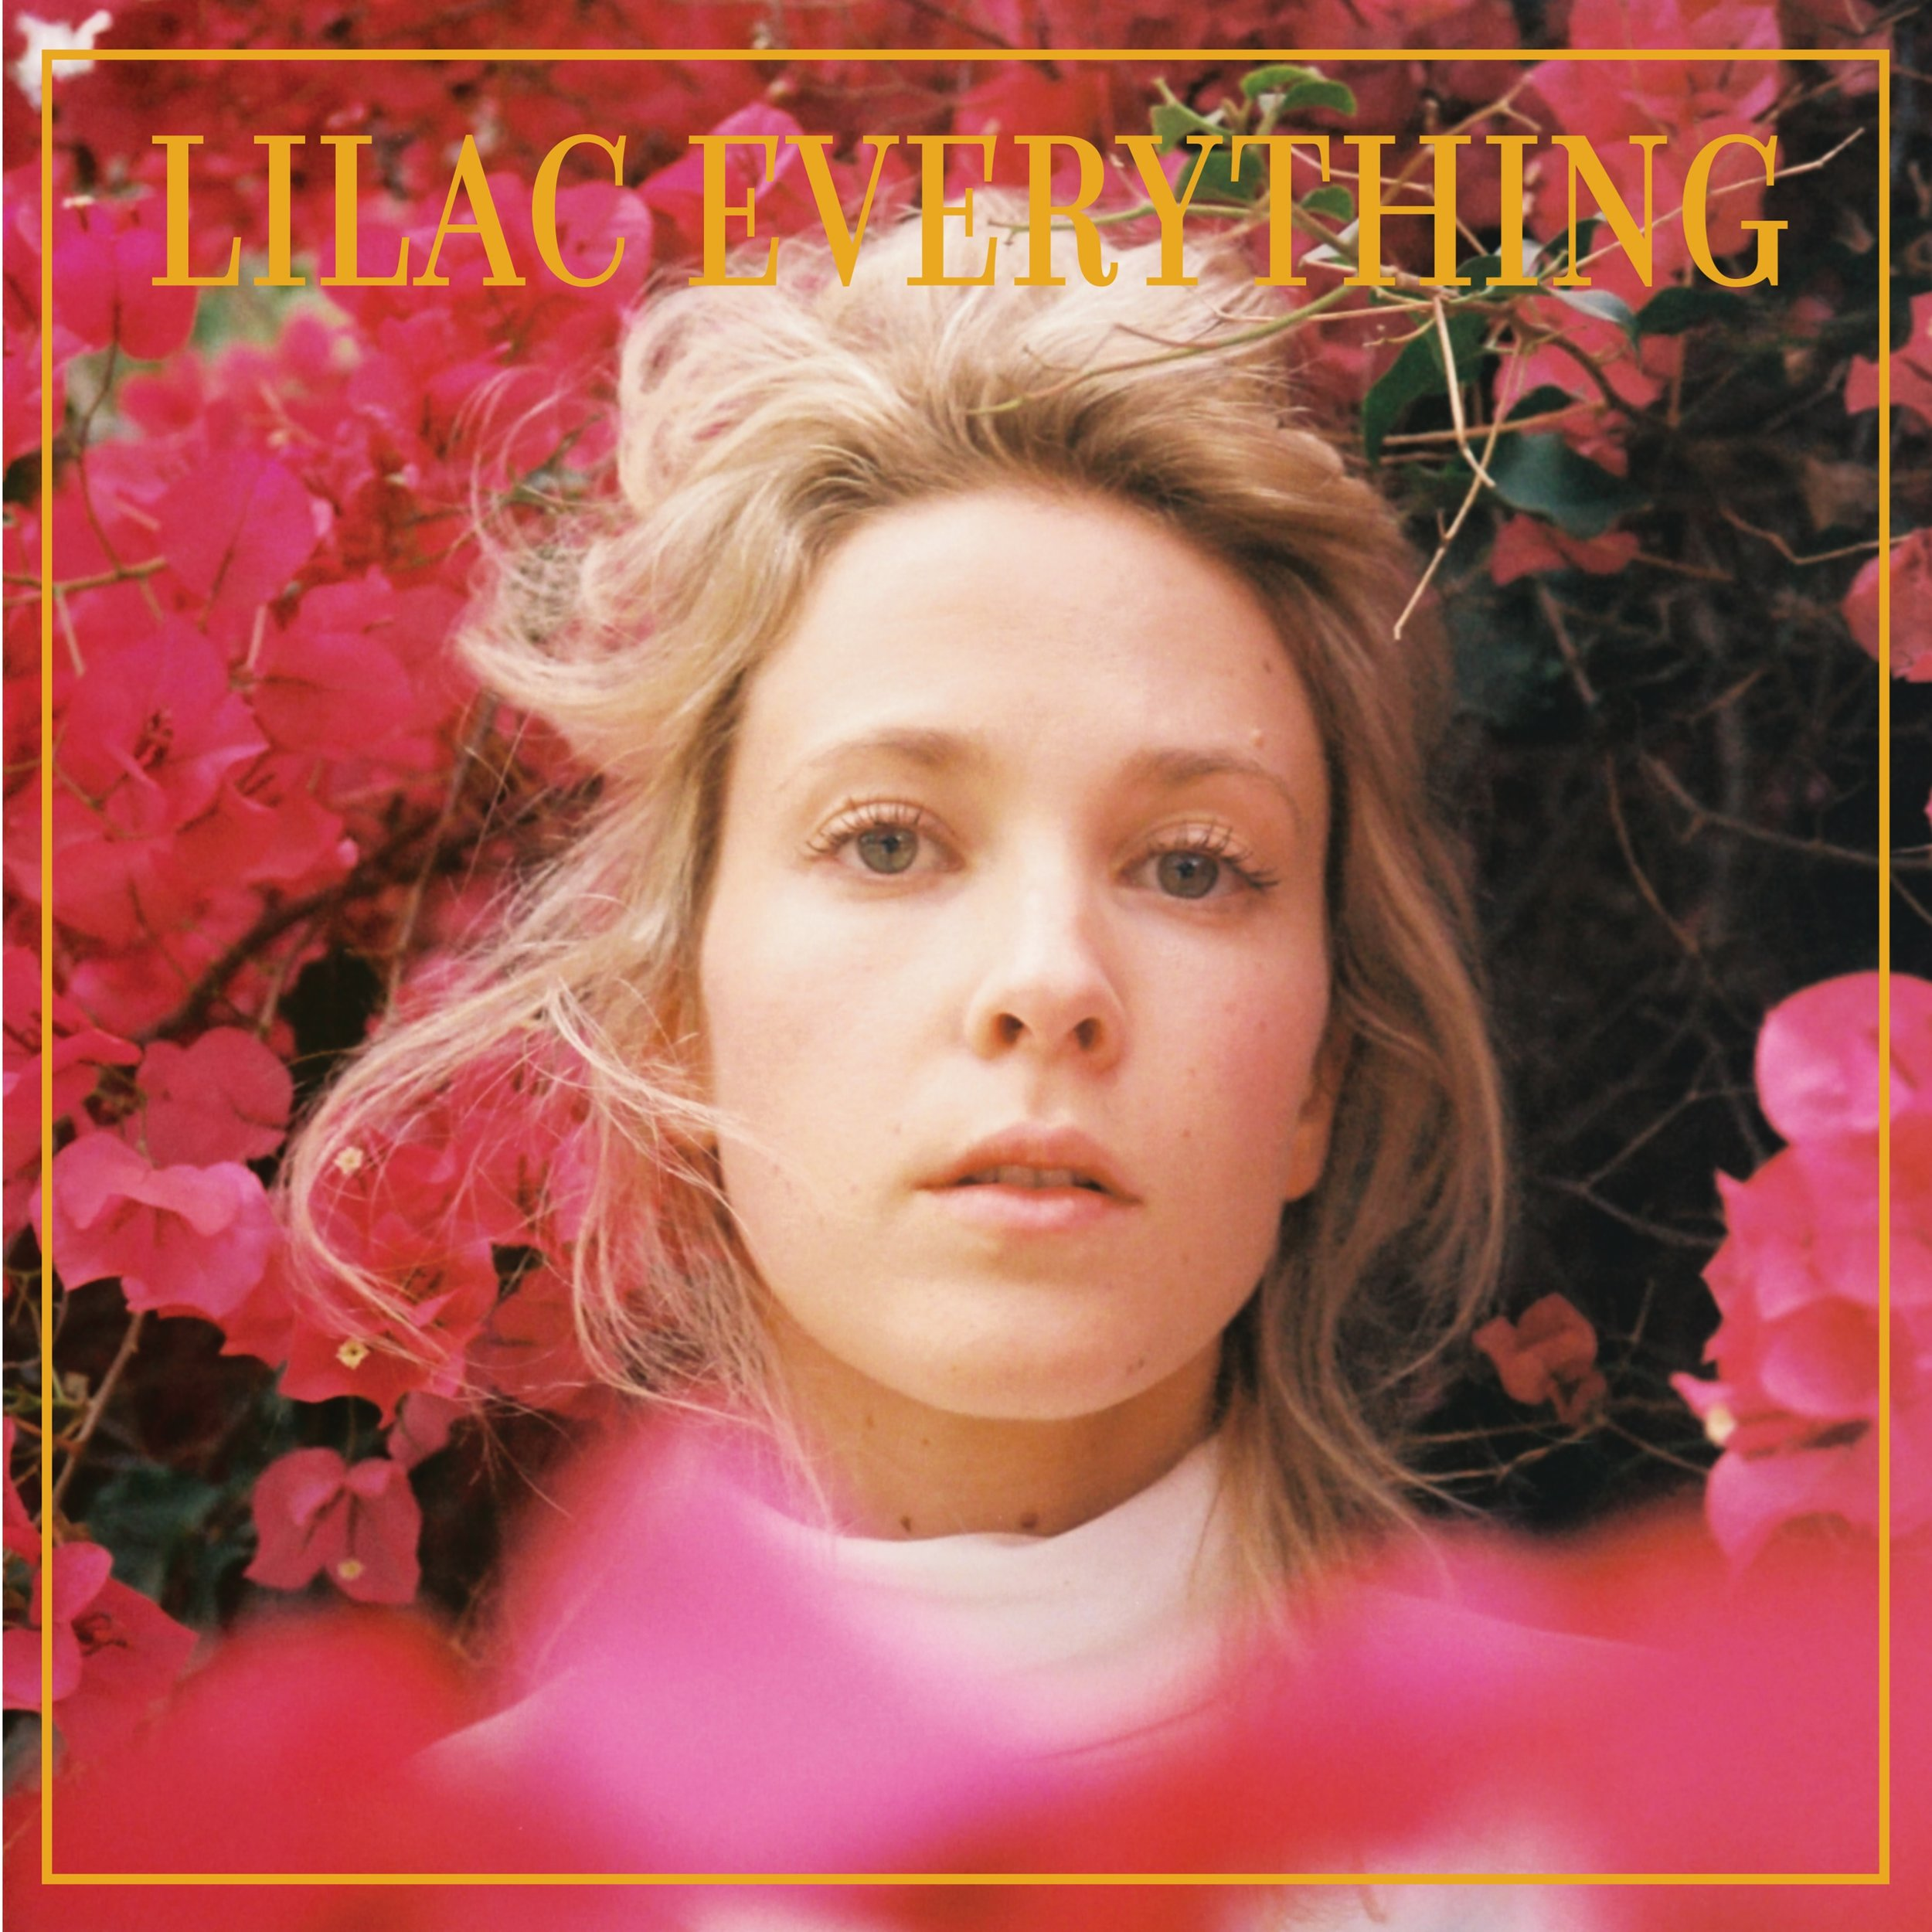 Lilac Everything; A Project by Emma Louise - Album Art.jpg